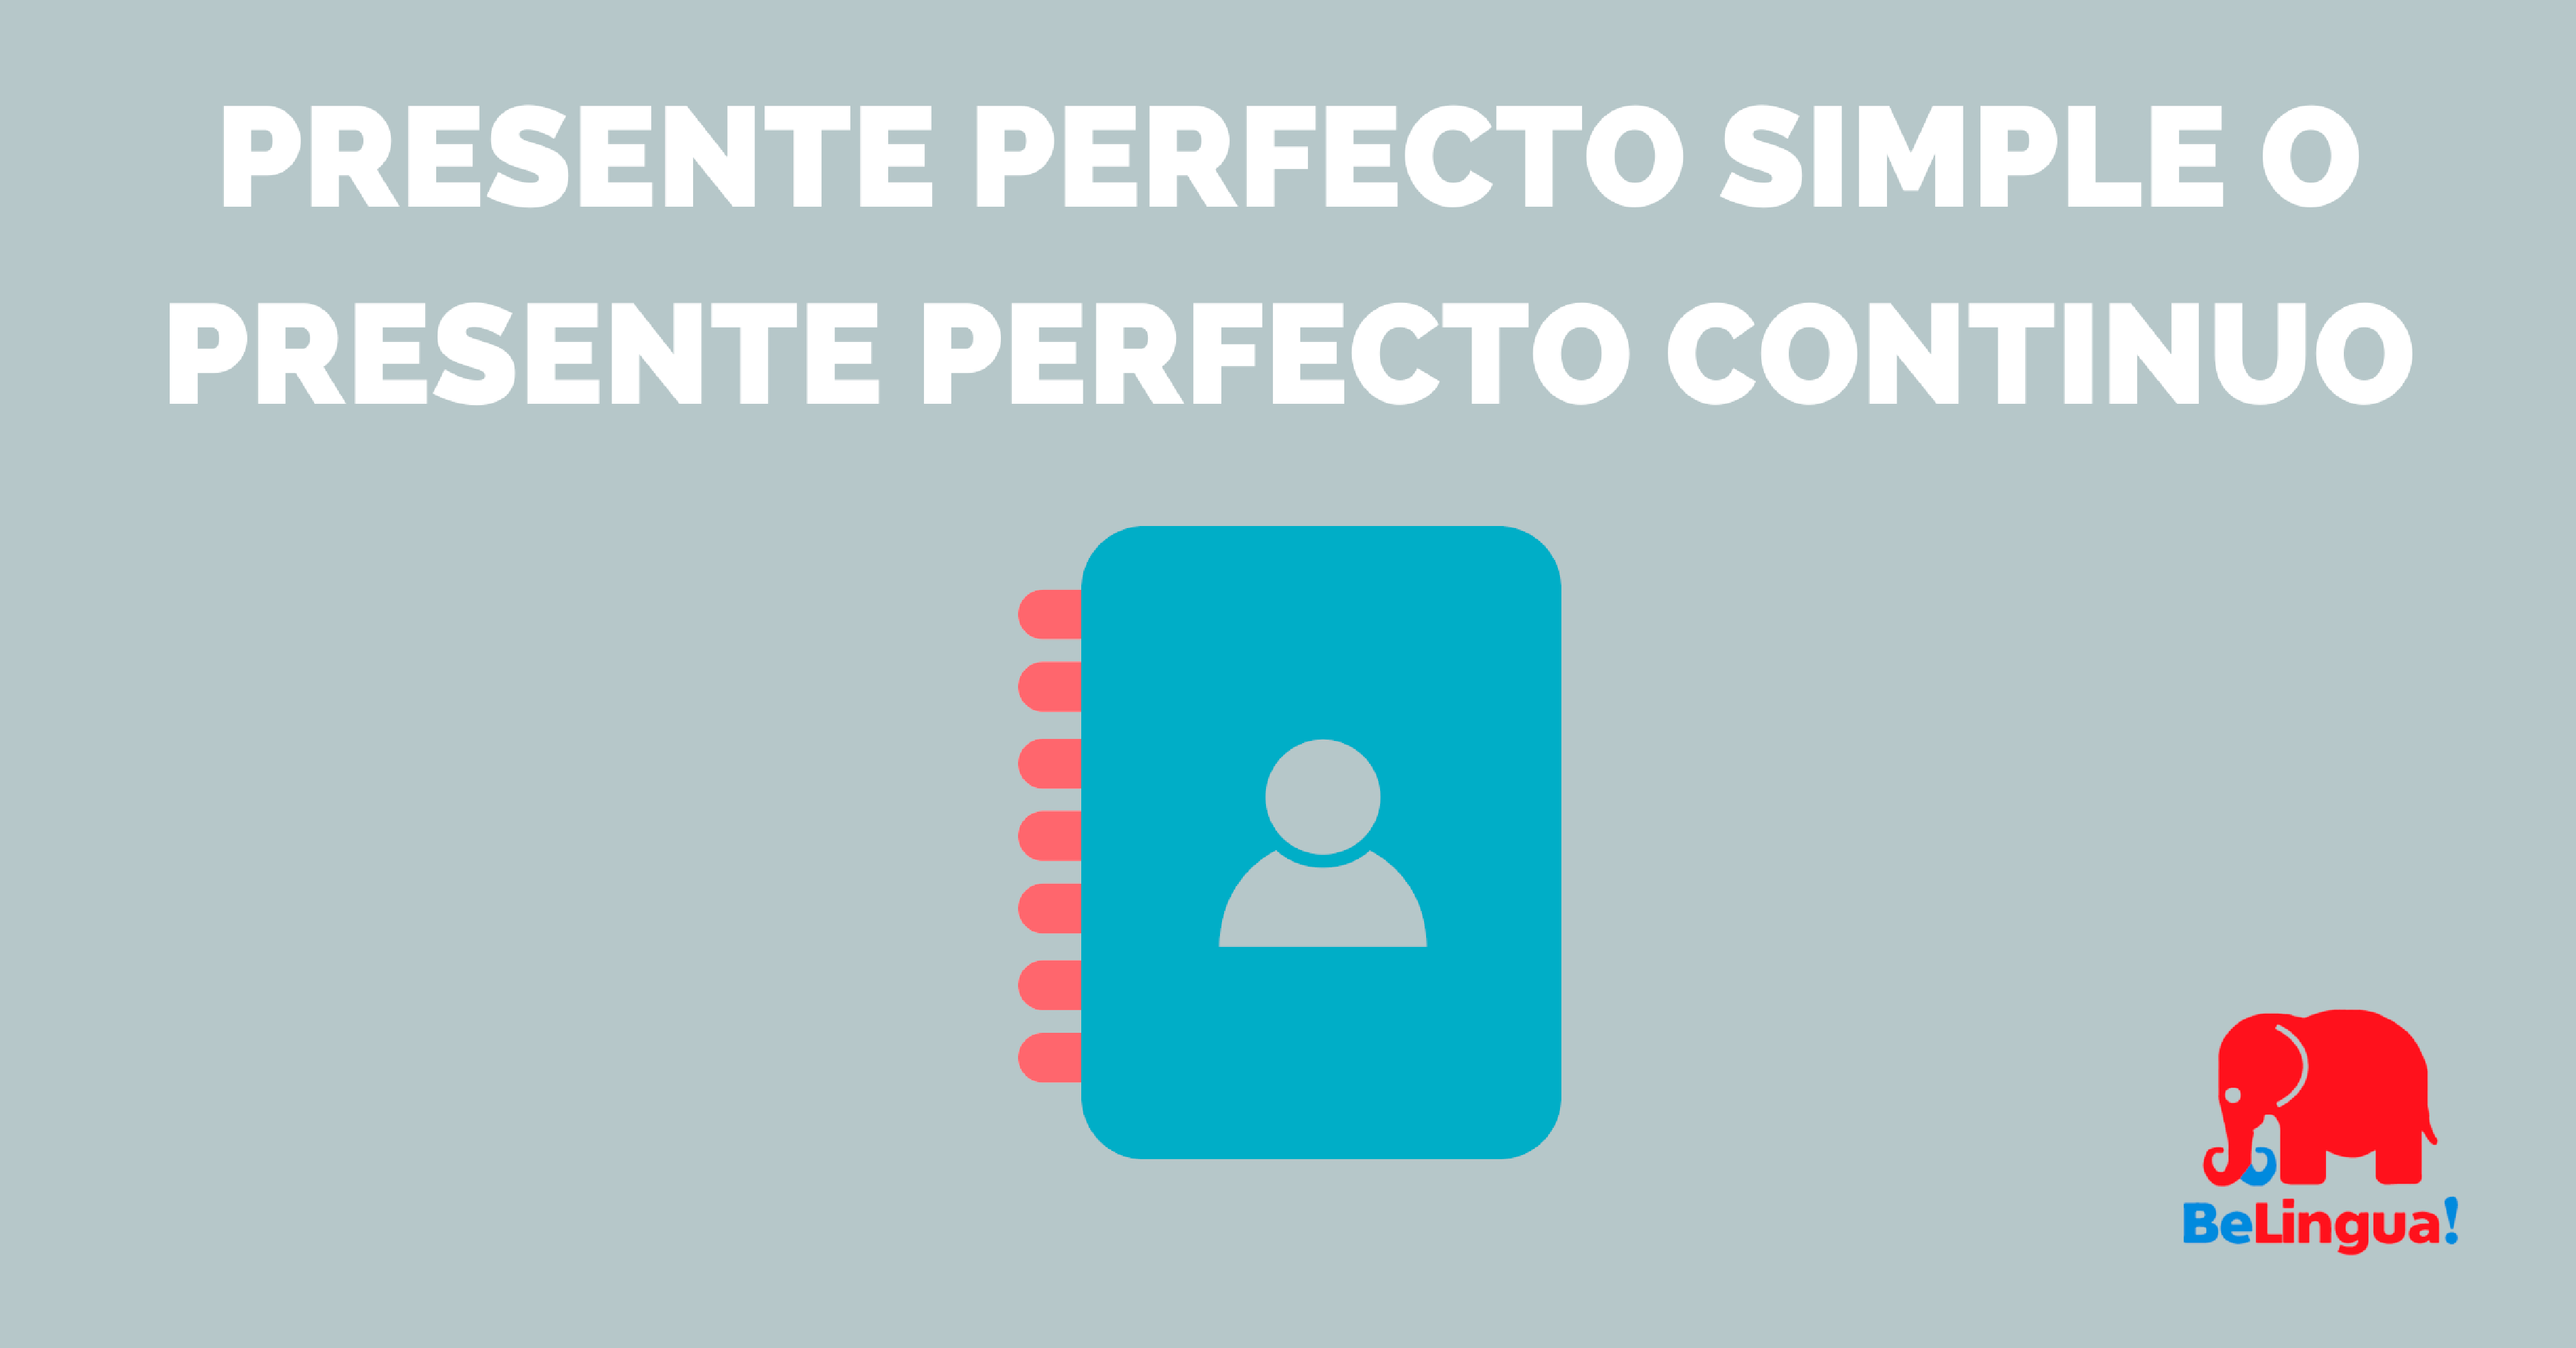 Presente perfecto simple o presente perfecto continuo